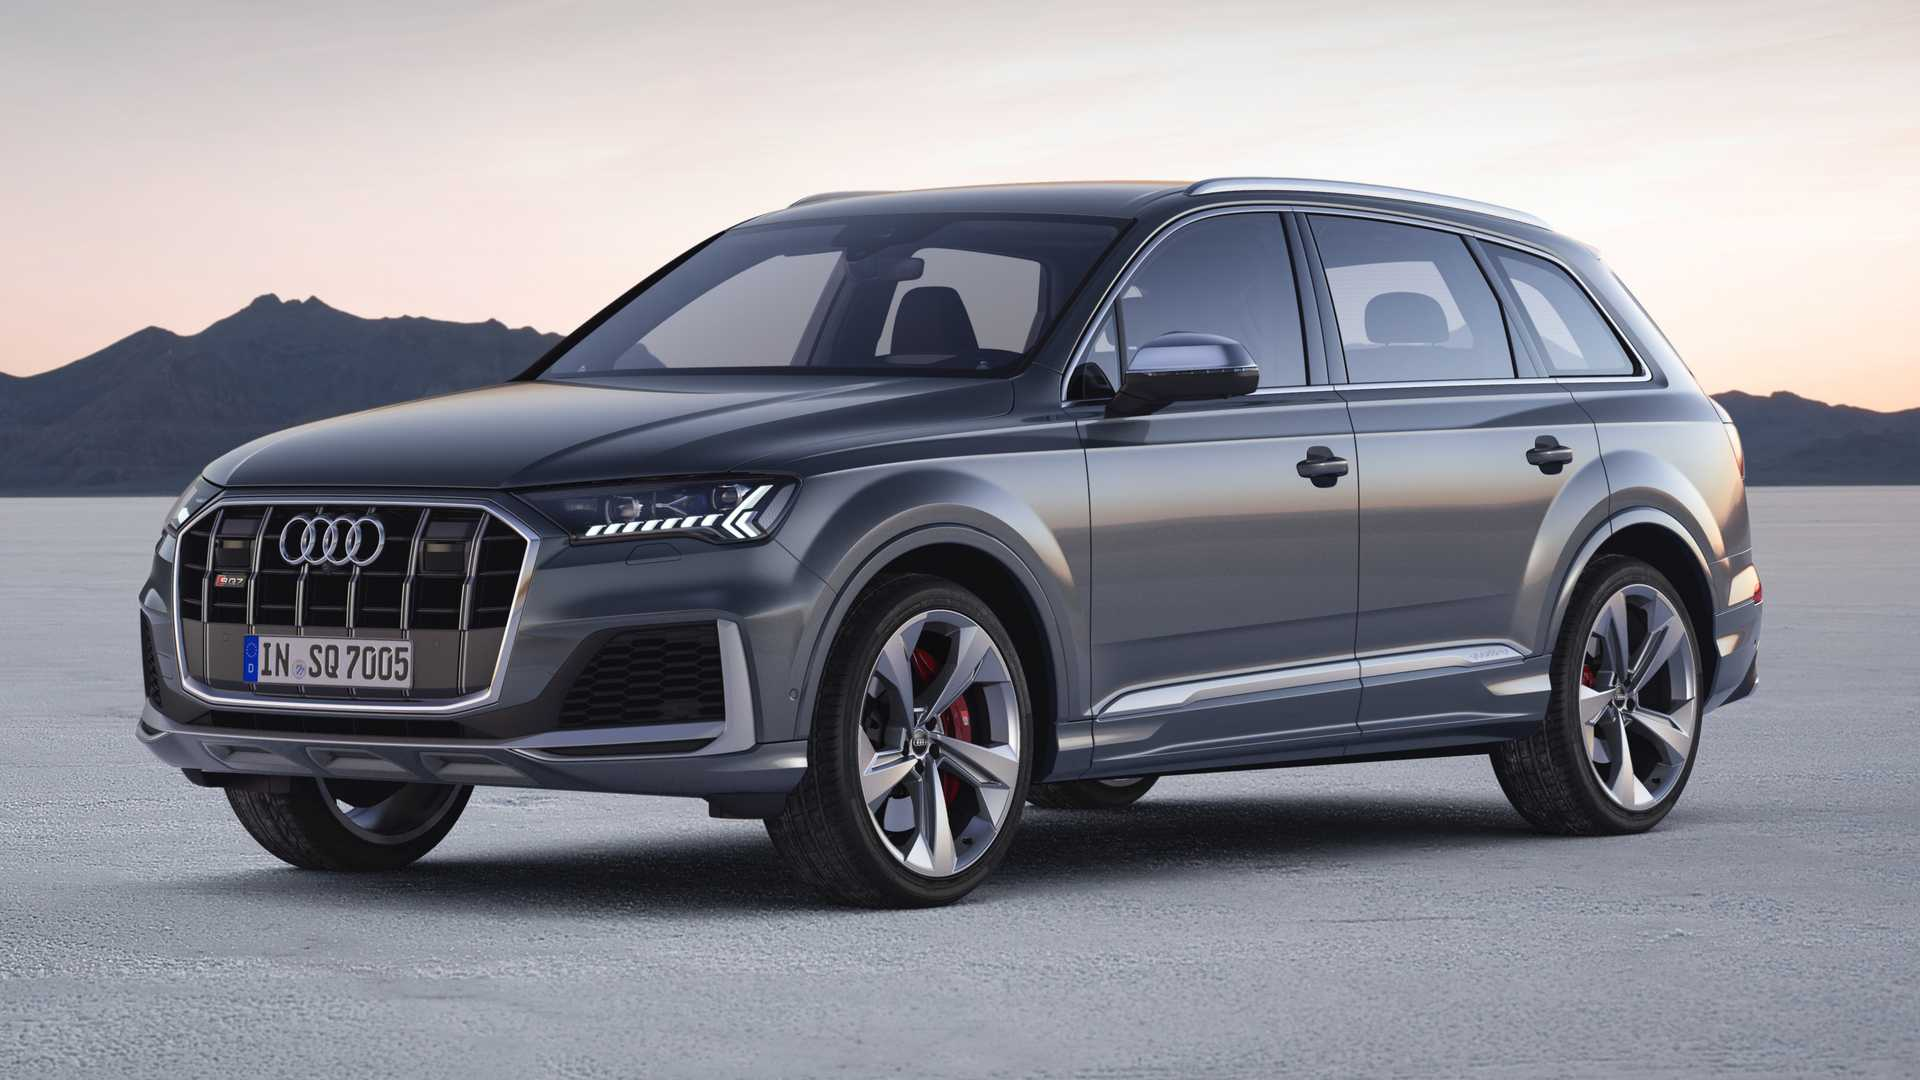 2020 Audi Sq7 Tdi Arrives With Fresh Design Torque Rich V8 Diesel